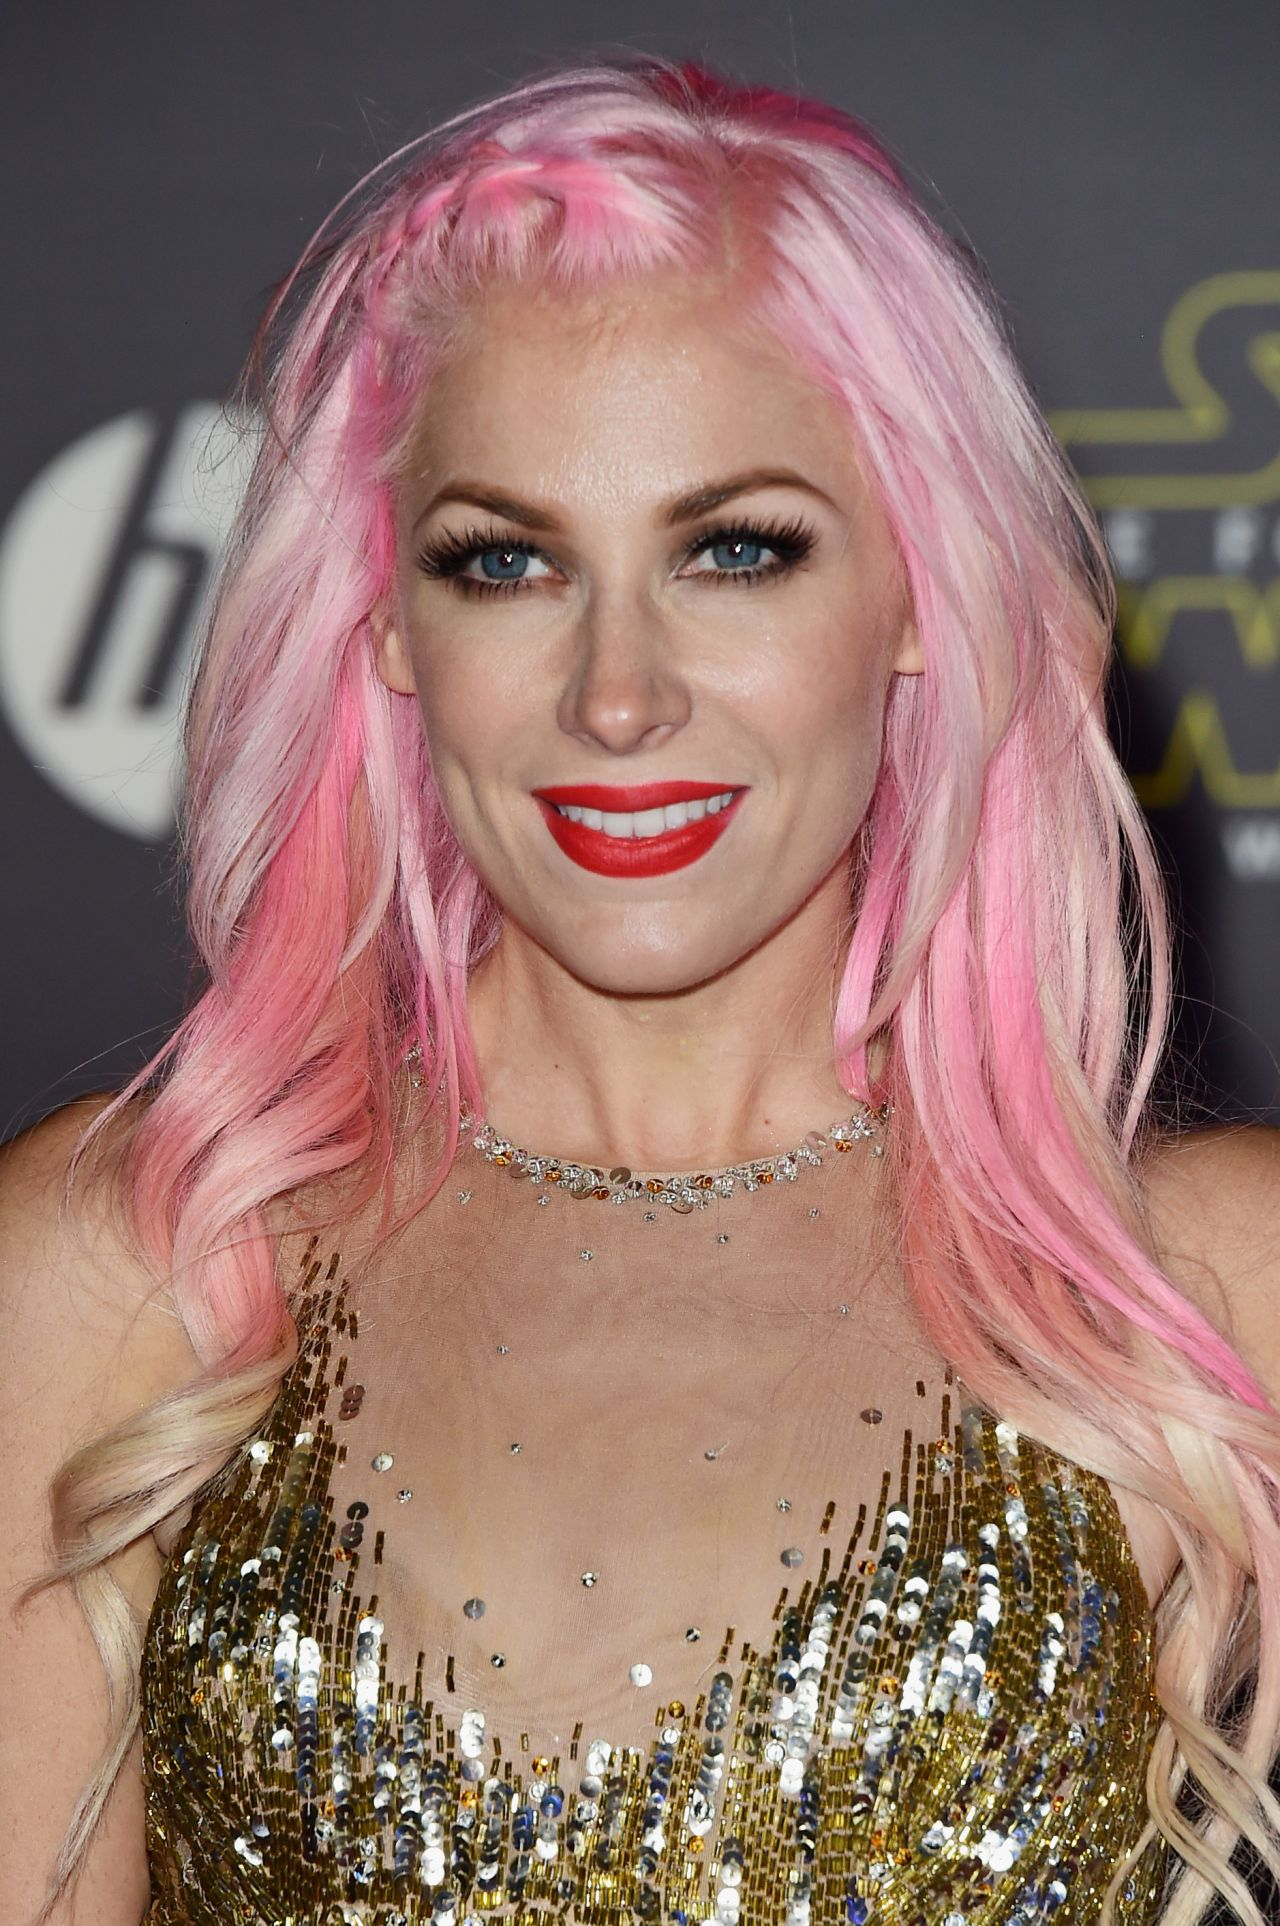 Bonnie Mckee Star Wars The Force Awakens Premiere In